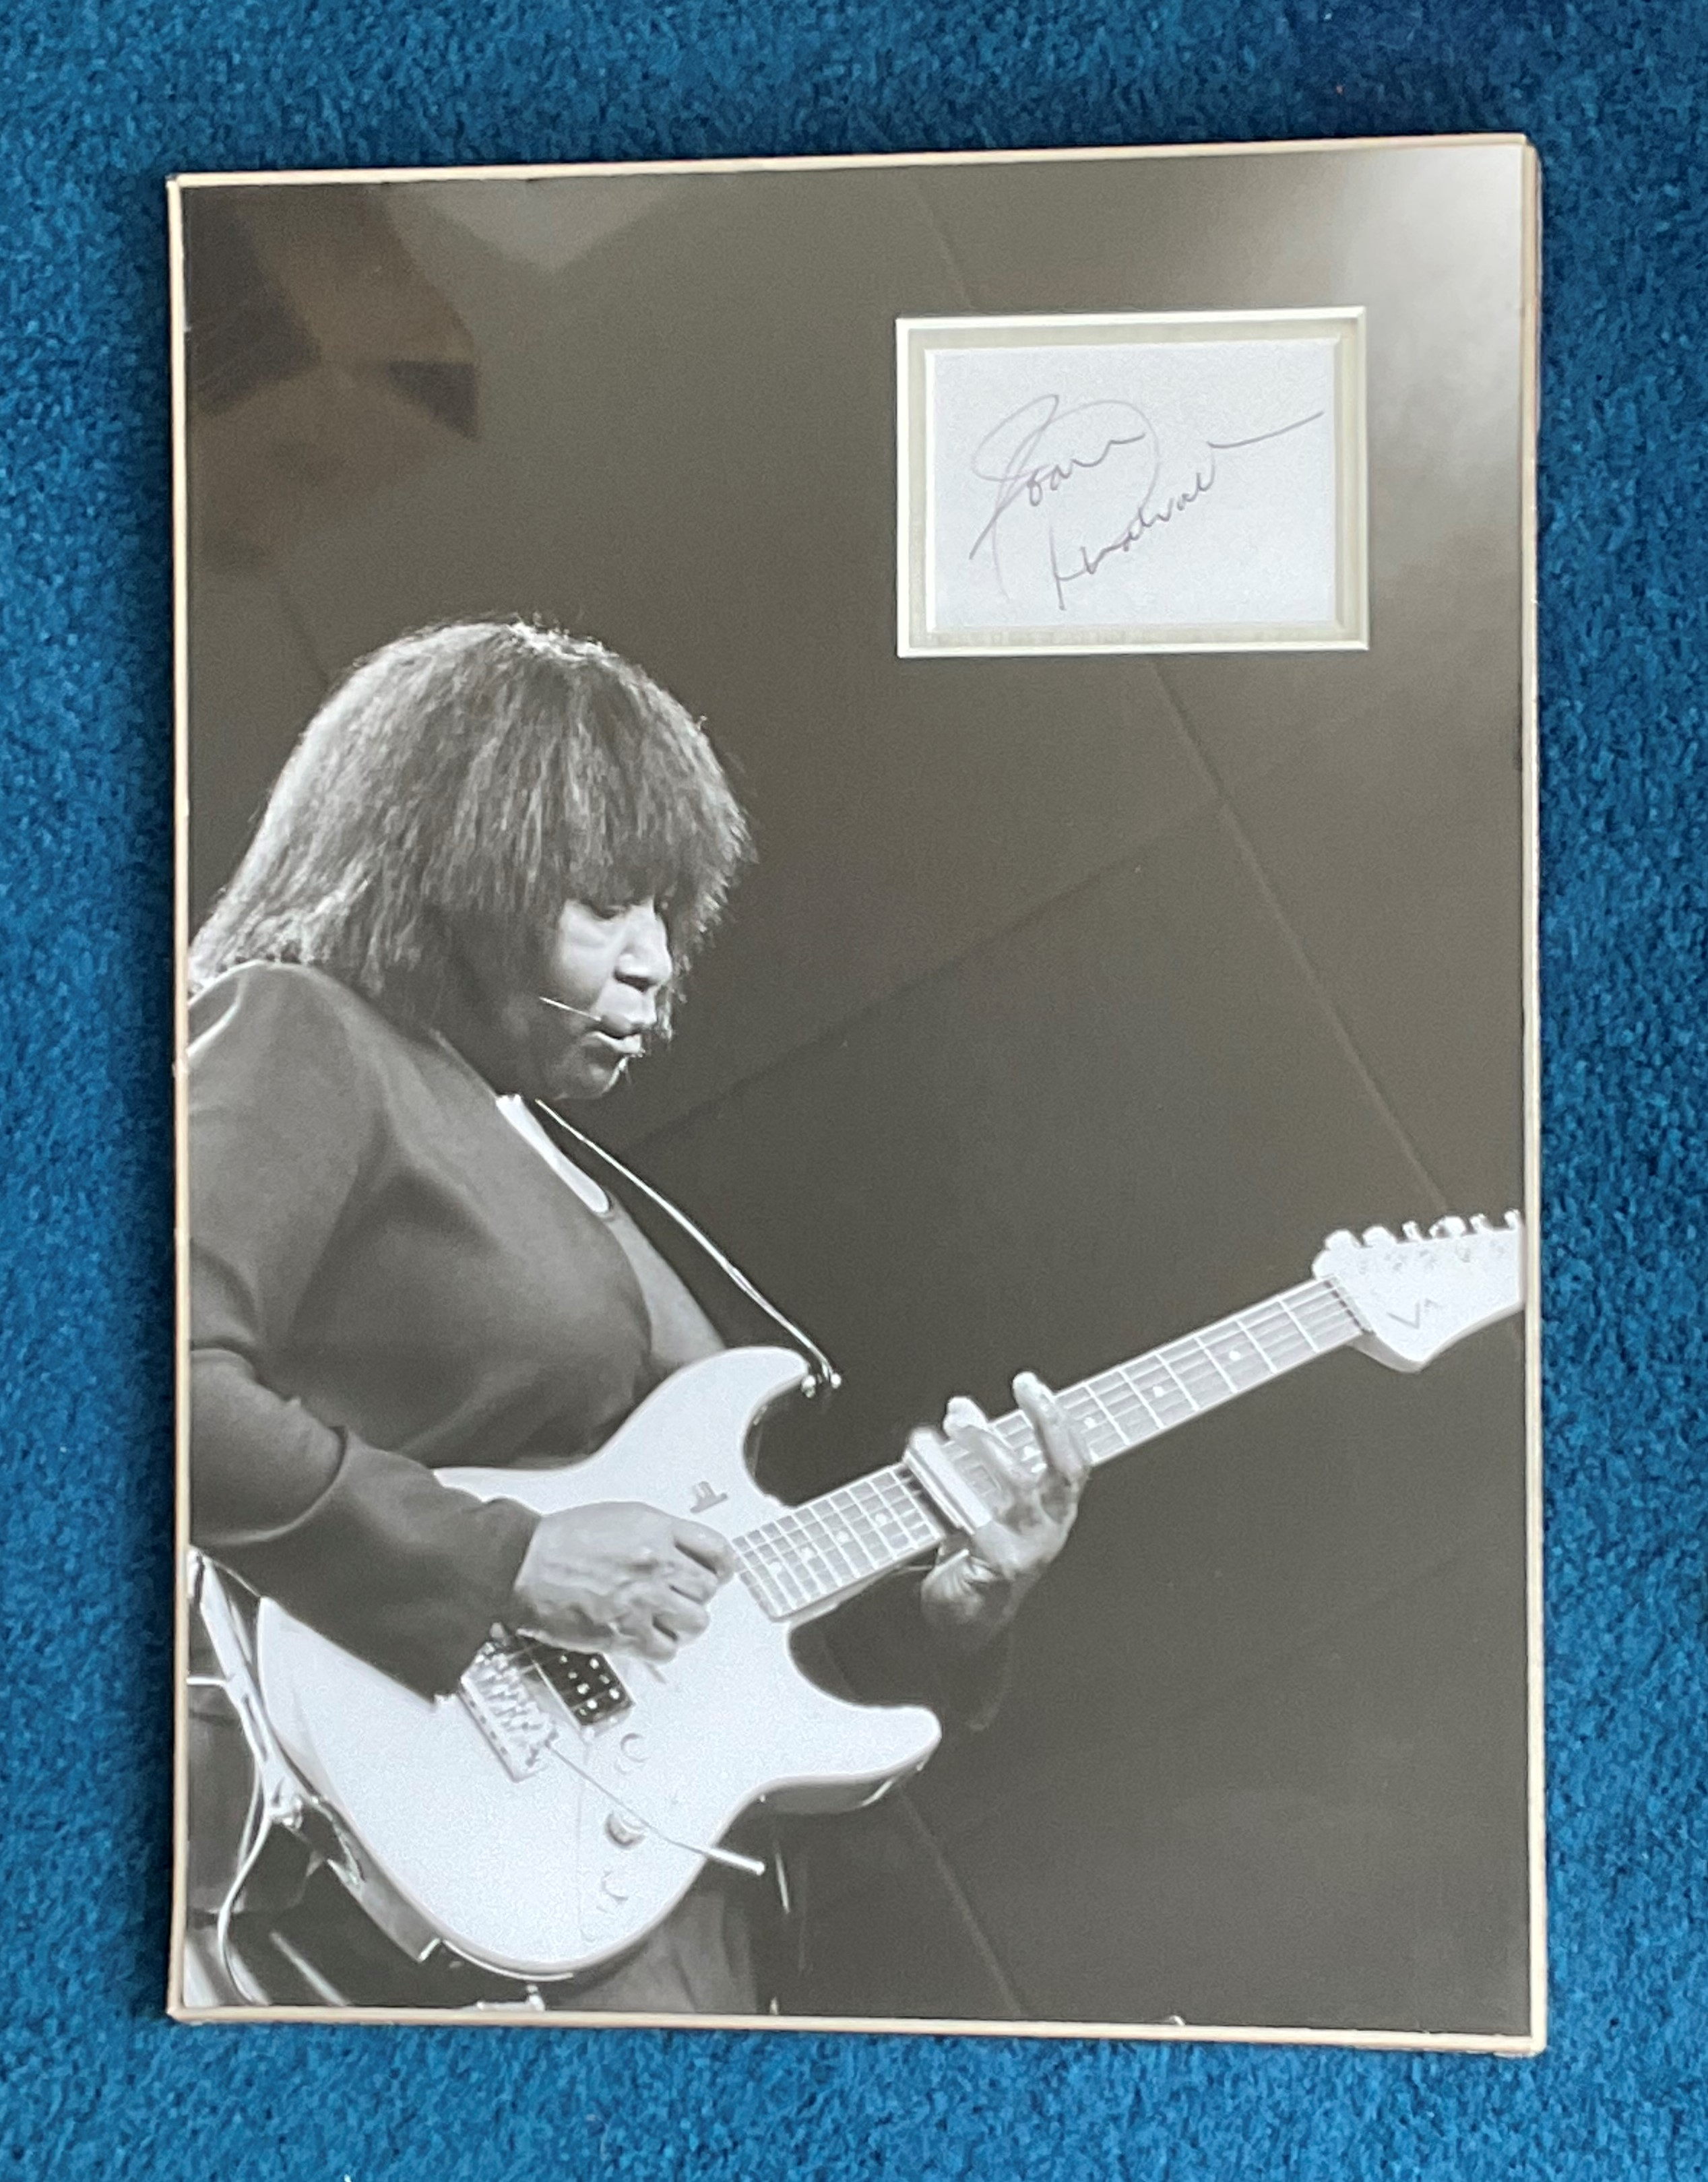 Joan Armatrading 16x12 mounted and matted signature piece includes superb black and white photo.